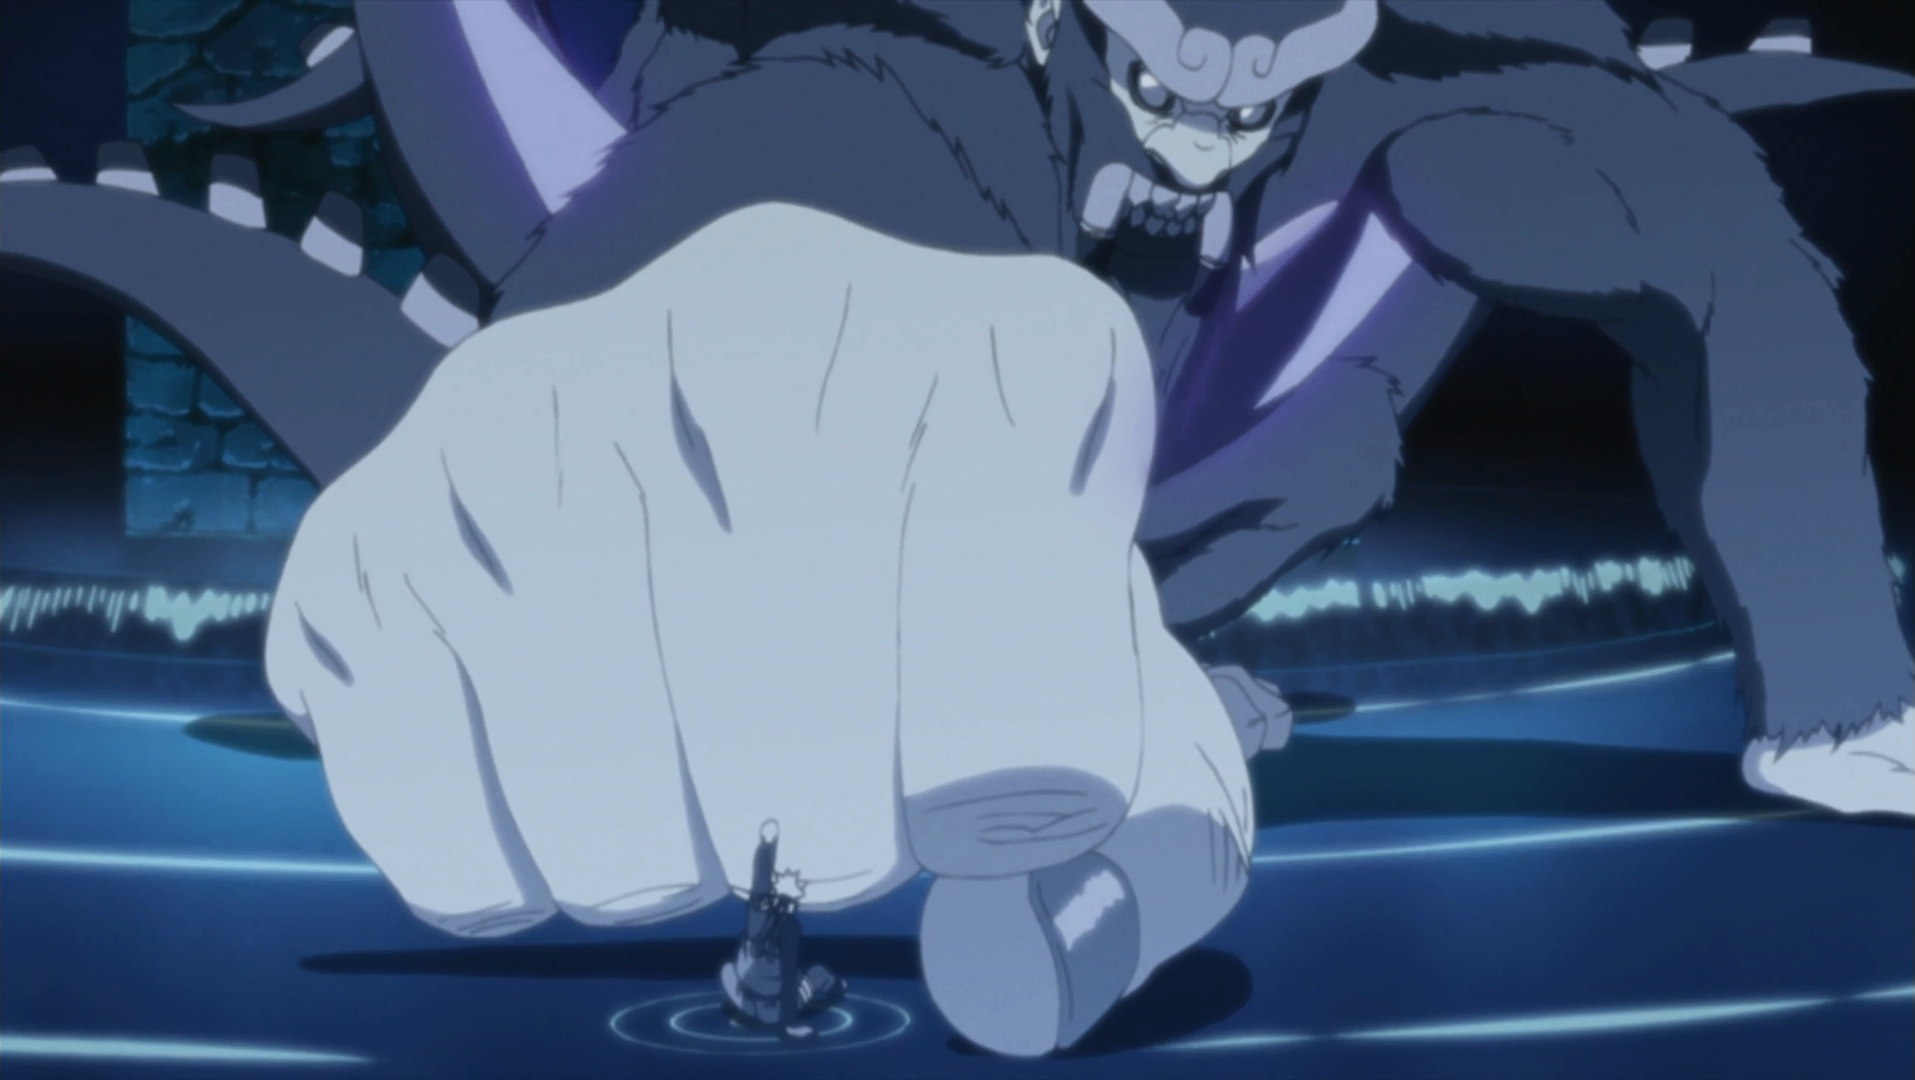 http://img2.wikia.nocookie.net/__cb20130905155434/naruto/images/3/33/Naruto_and_Son_fist_bump.png